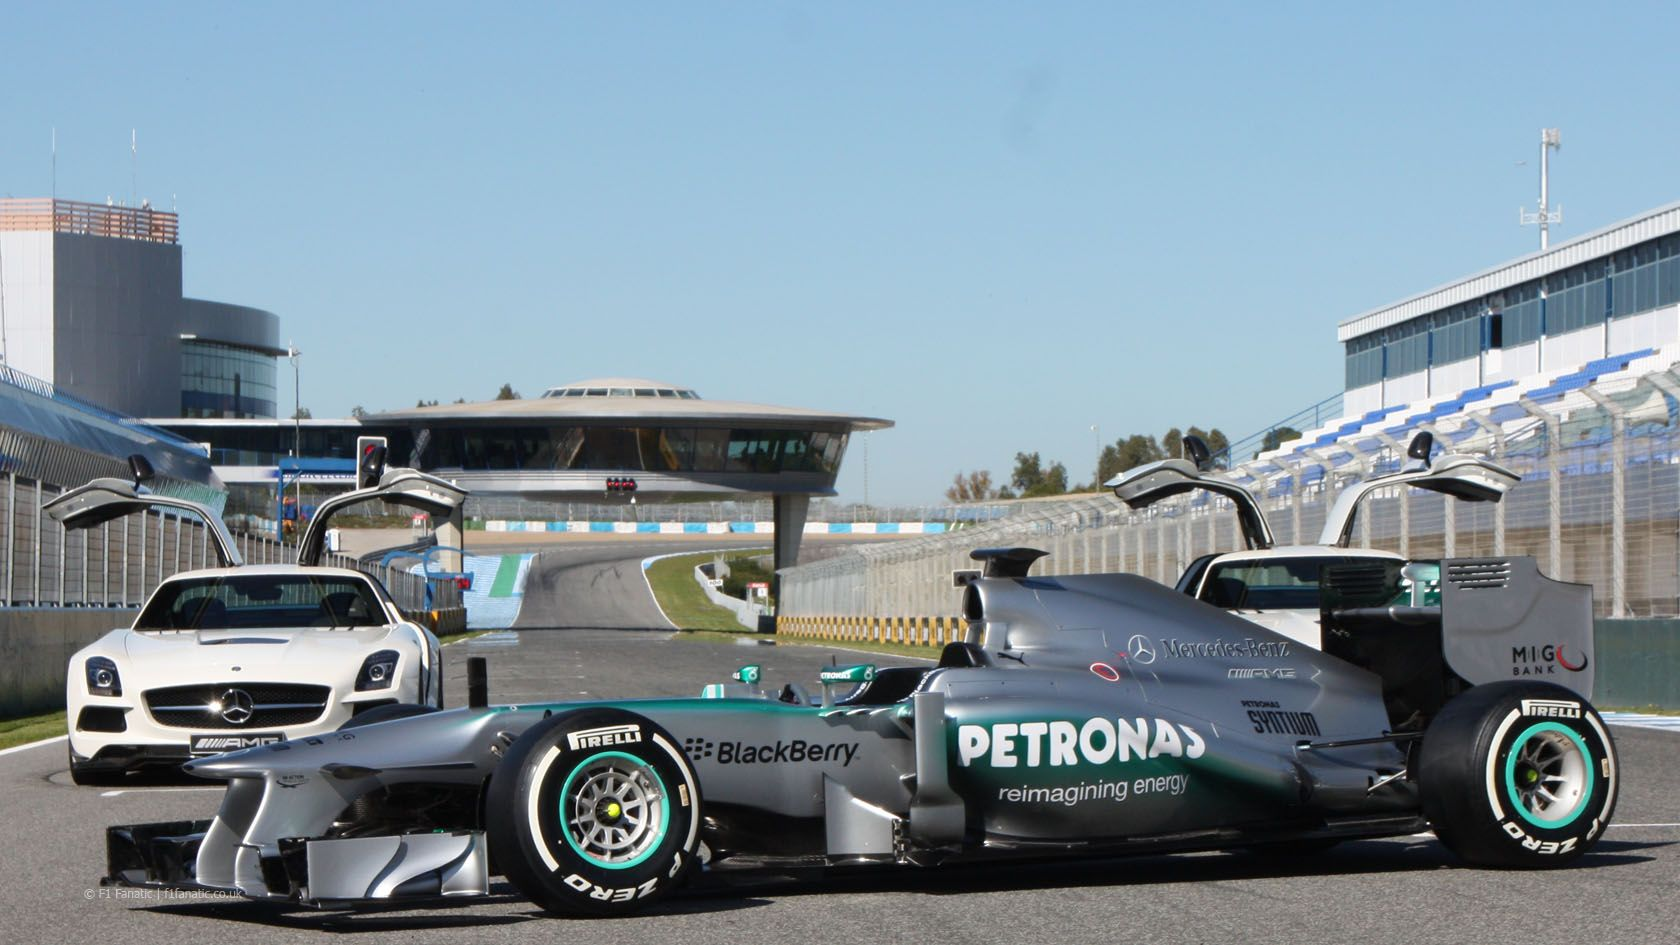 Image rights and ownership are of the Mercedes AMG Formula